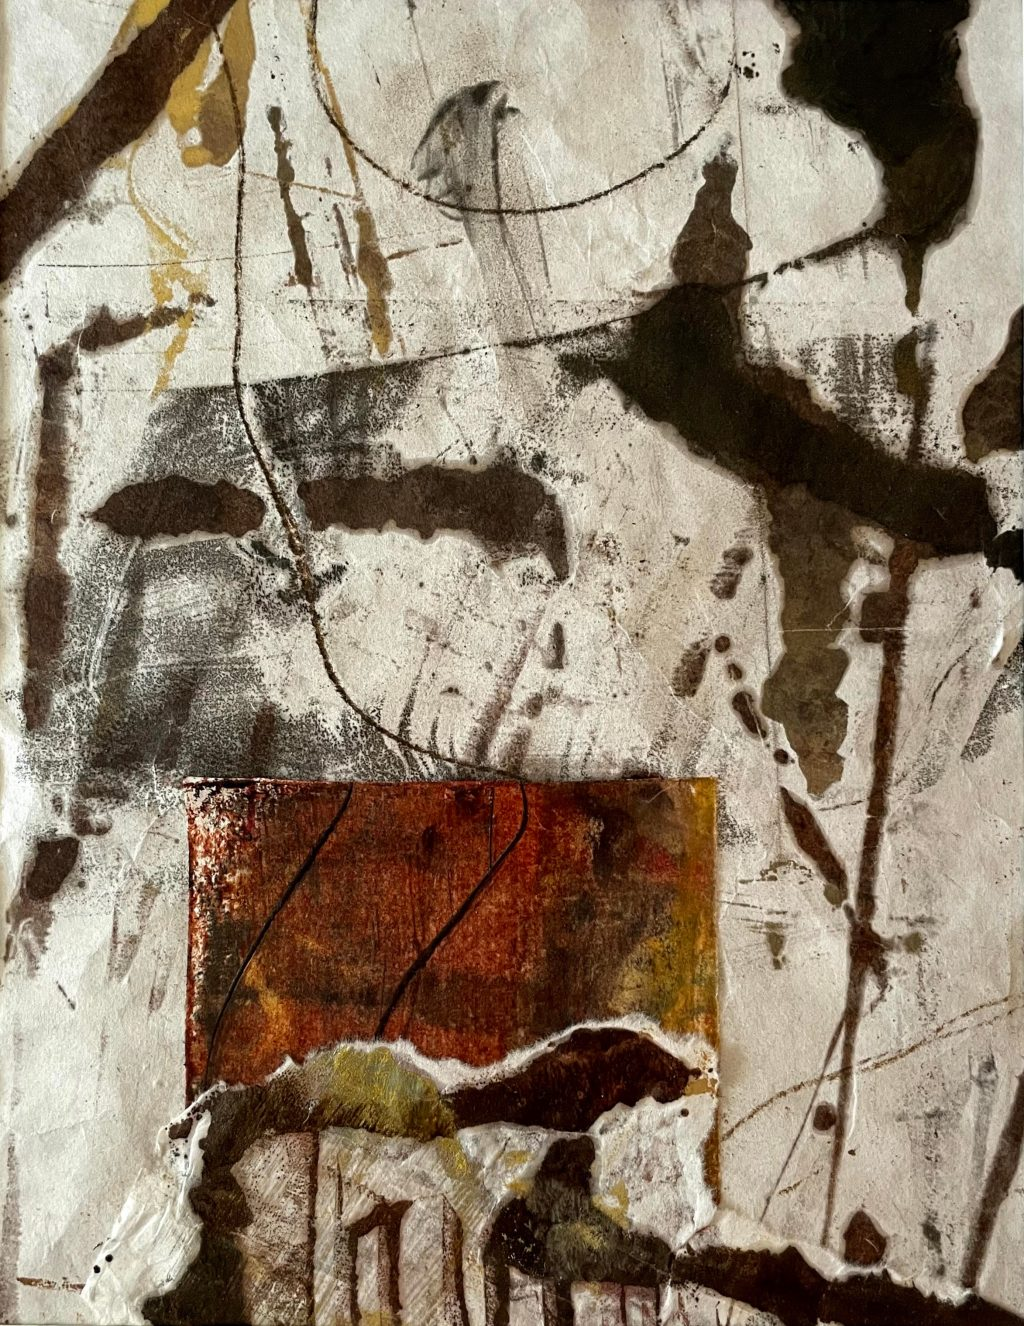 Opening Up #4, Encaustic on Japanese Paper, 14 x 11 inches